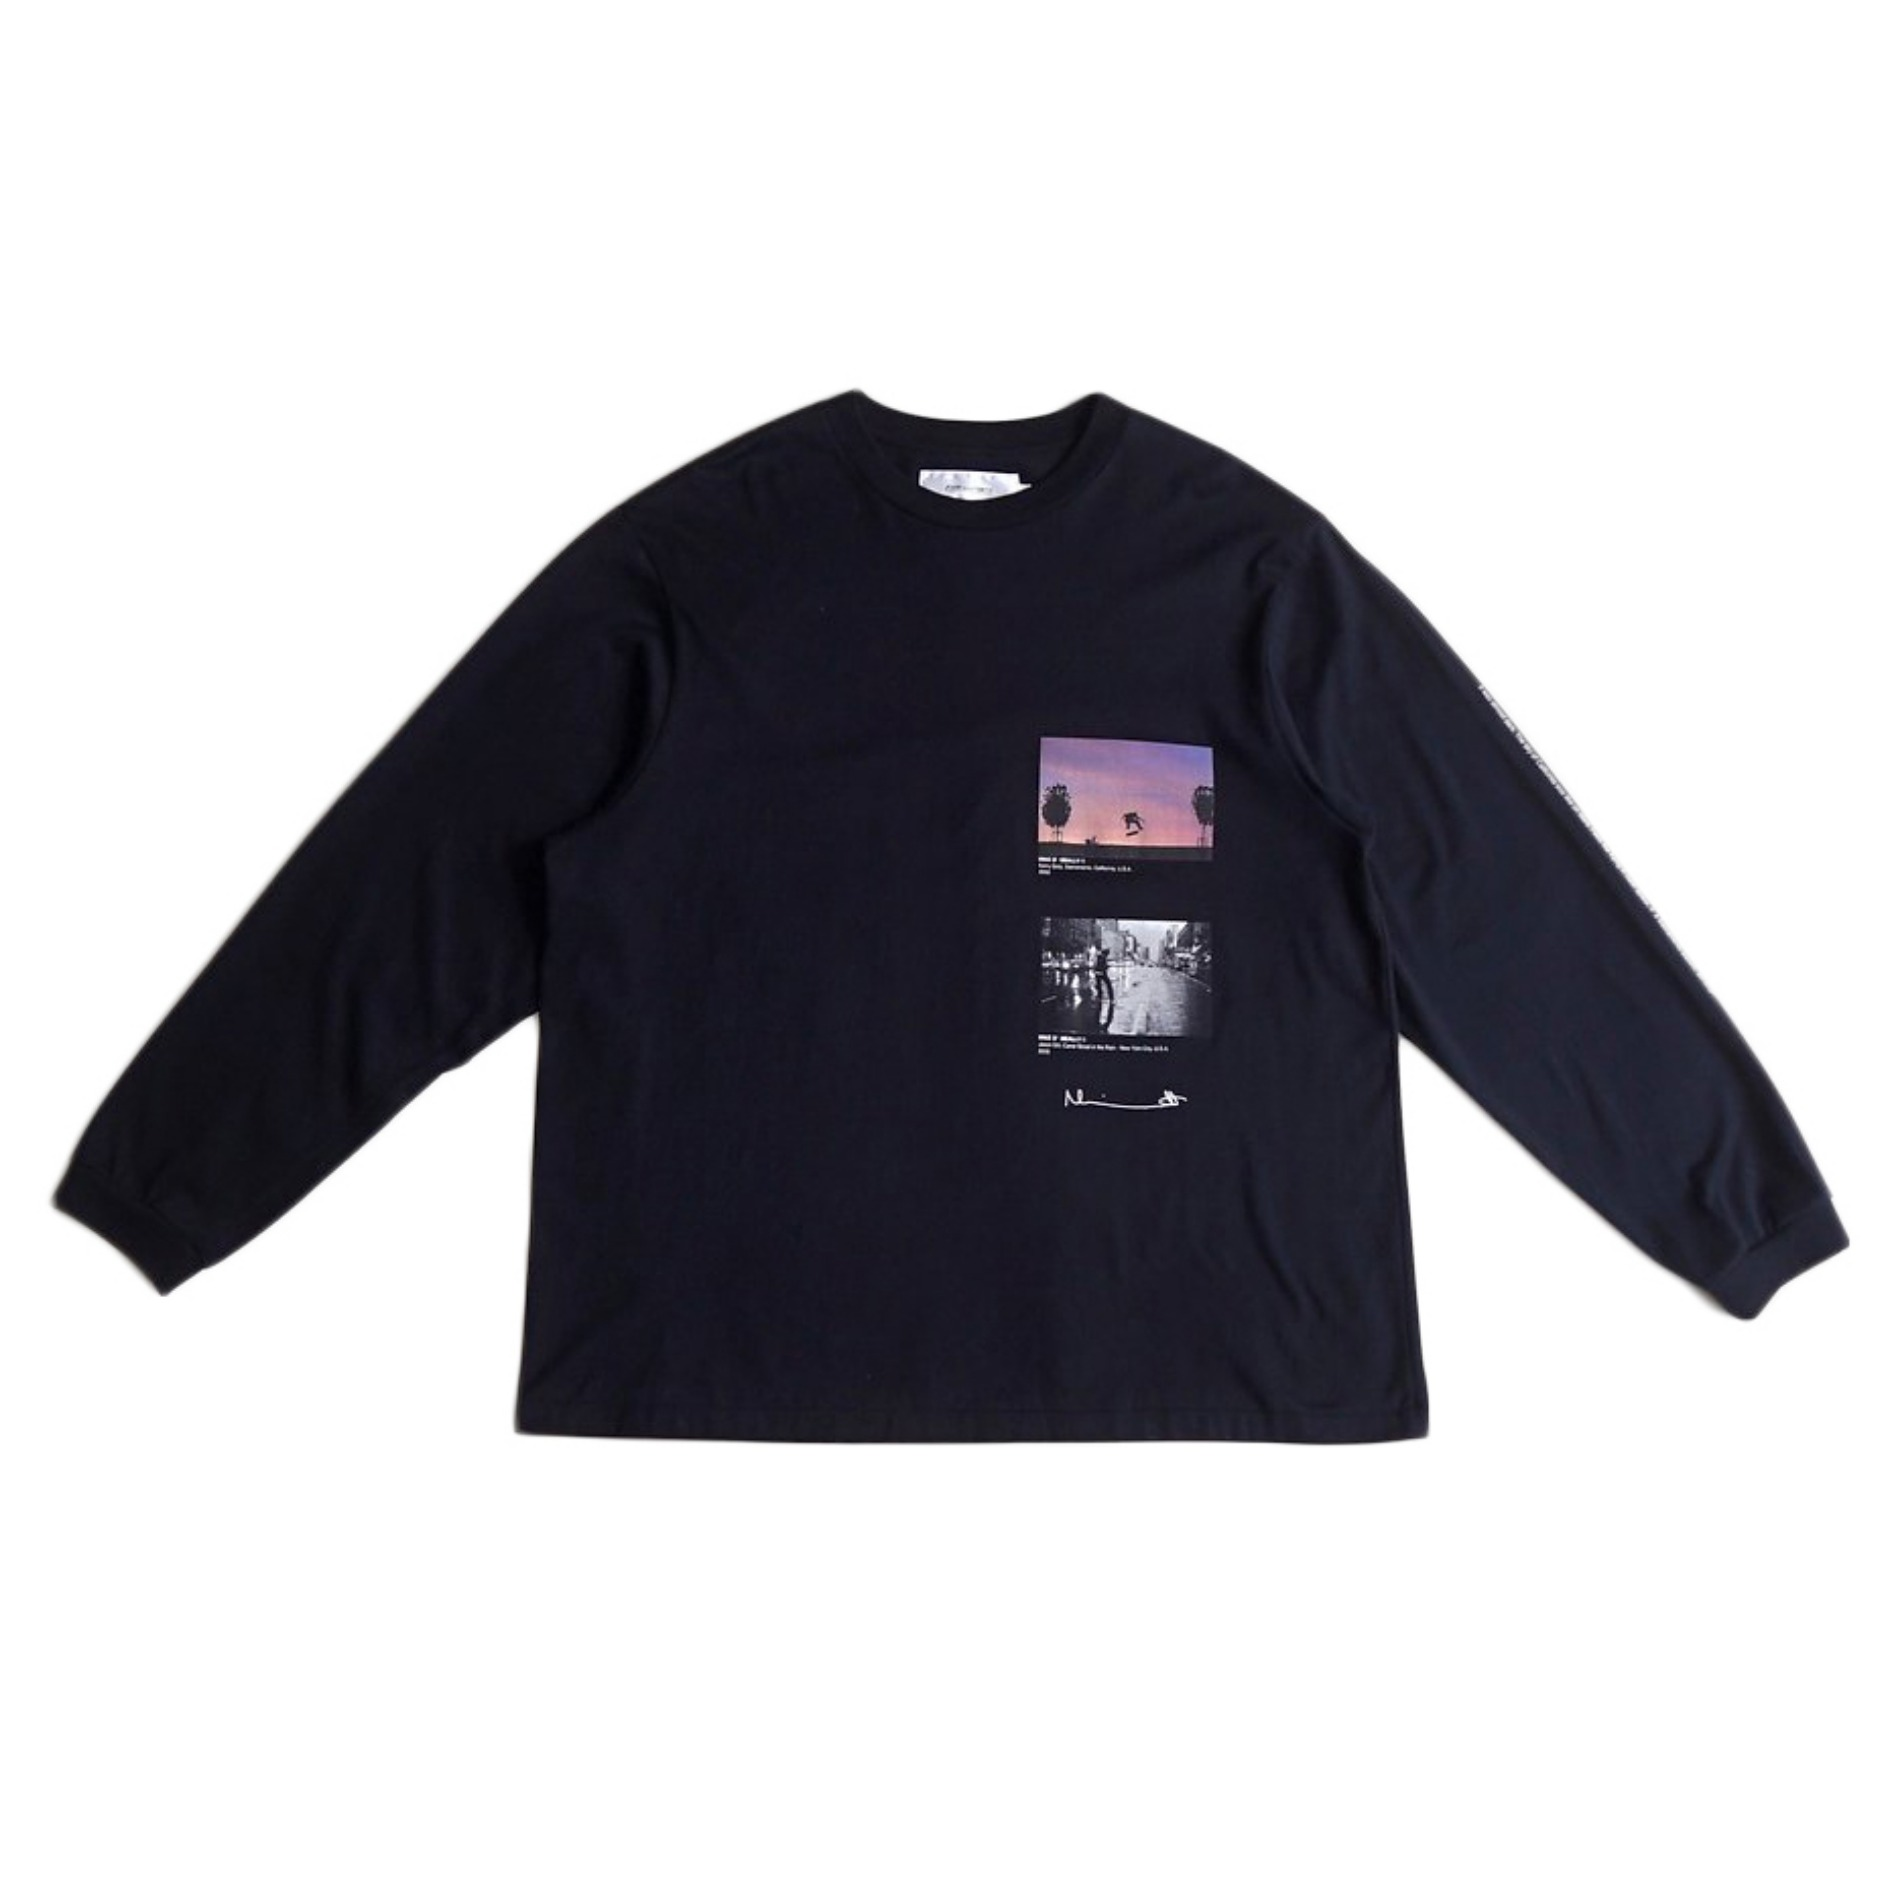 AW20 JOHN MASON SMITH KERRY GETZ & JASON DULL CANAL STREET IN THE RAIN L/S T-SHIRTS BLACK